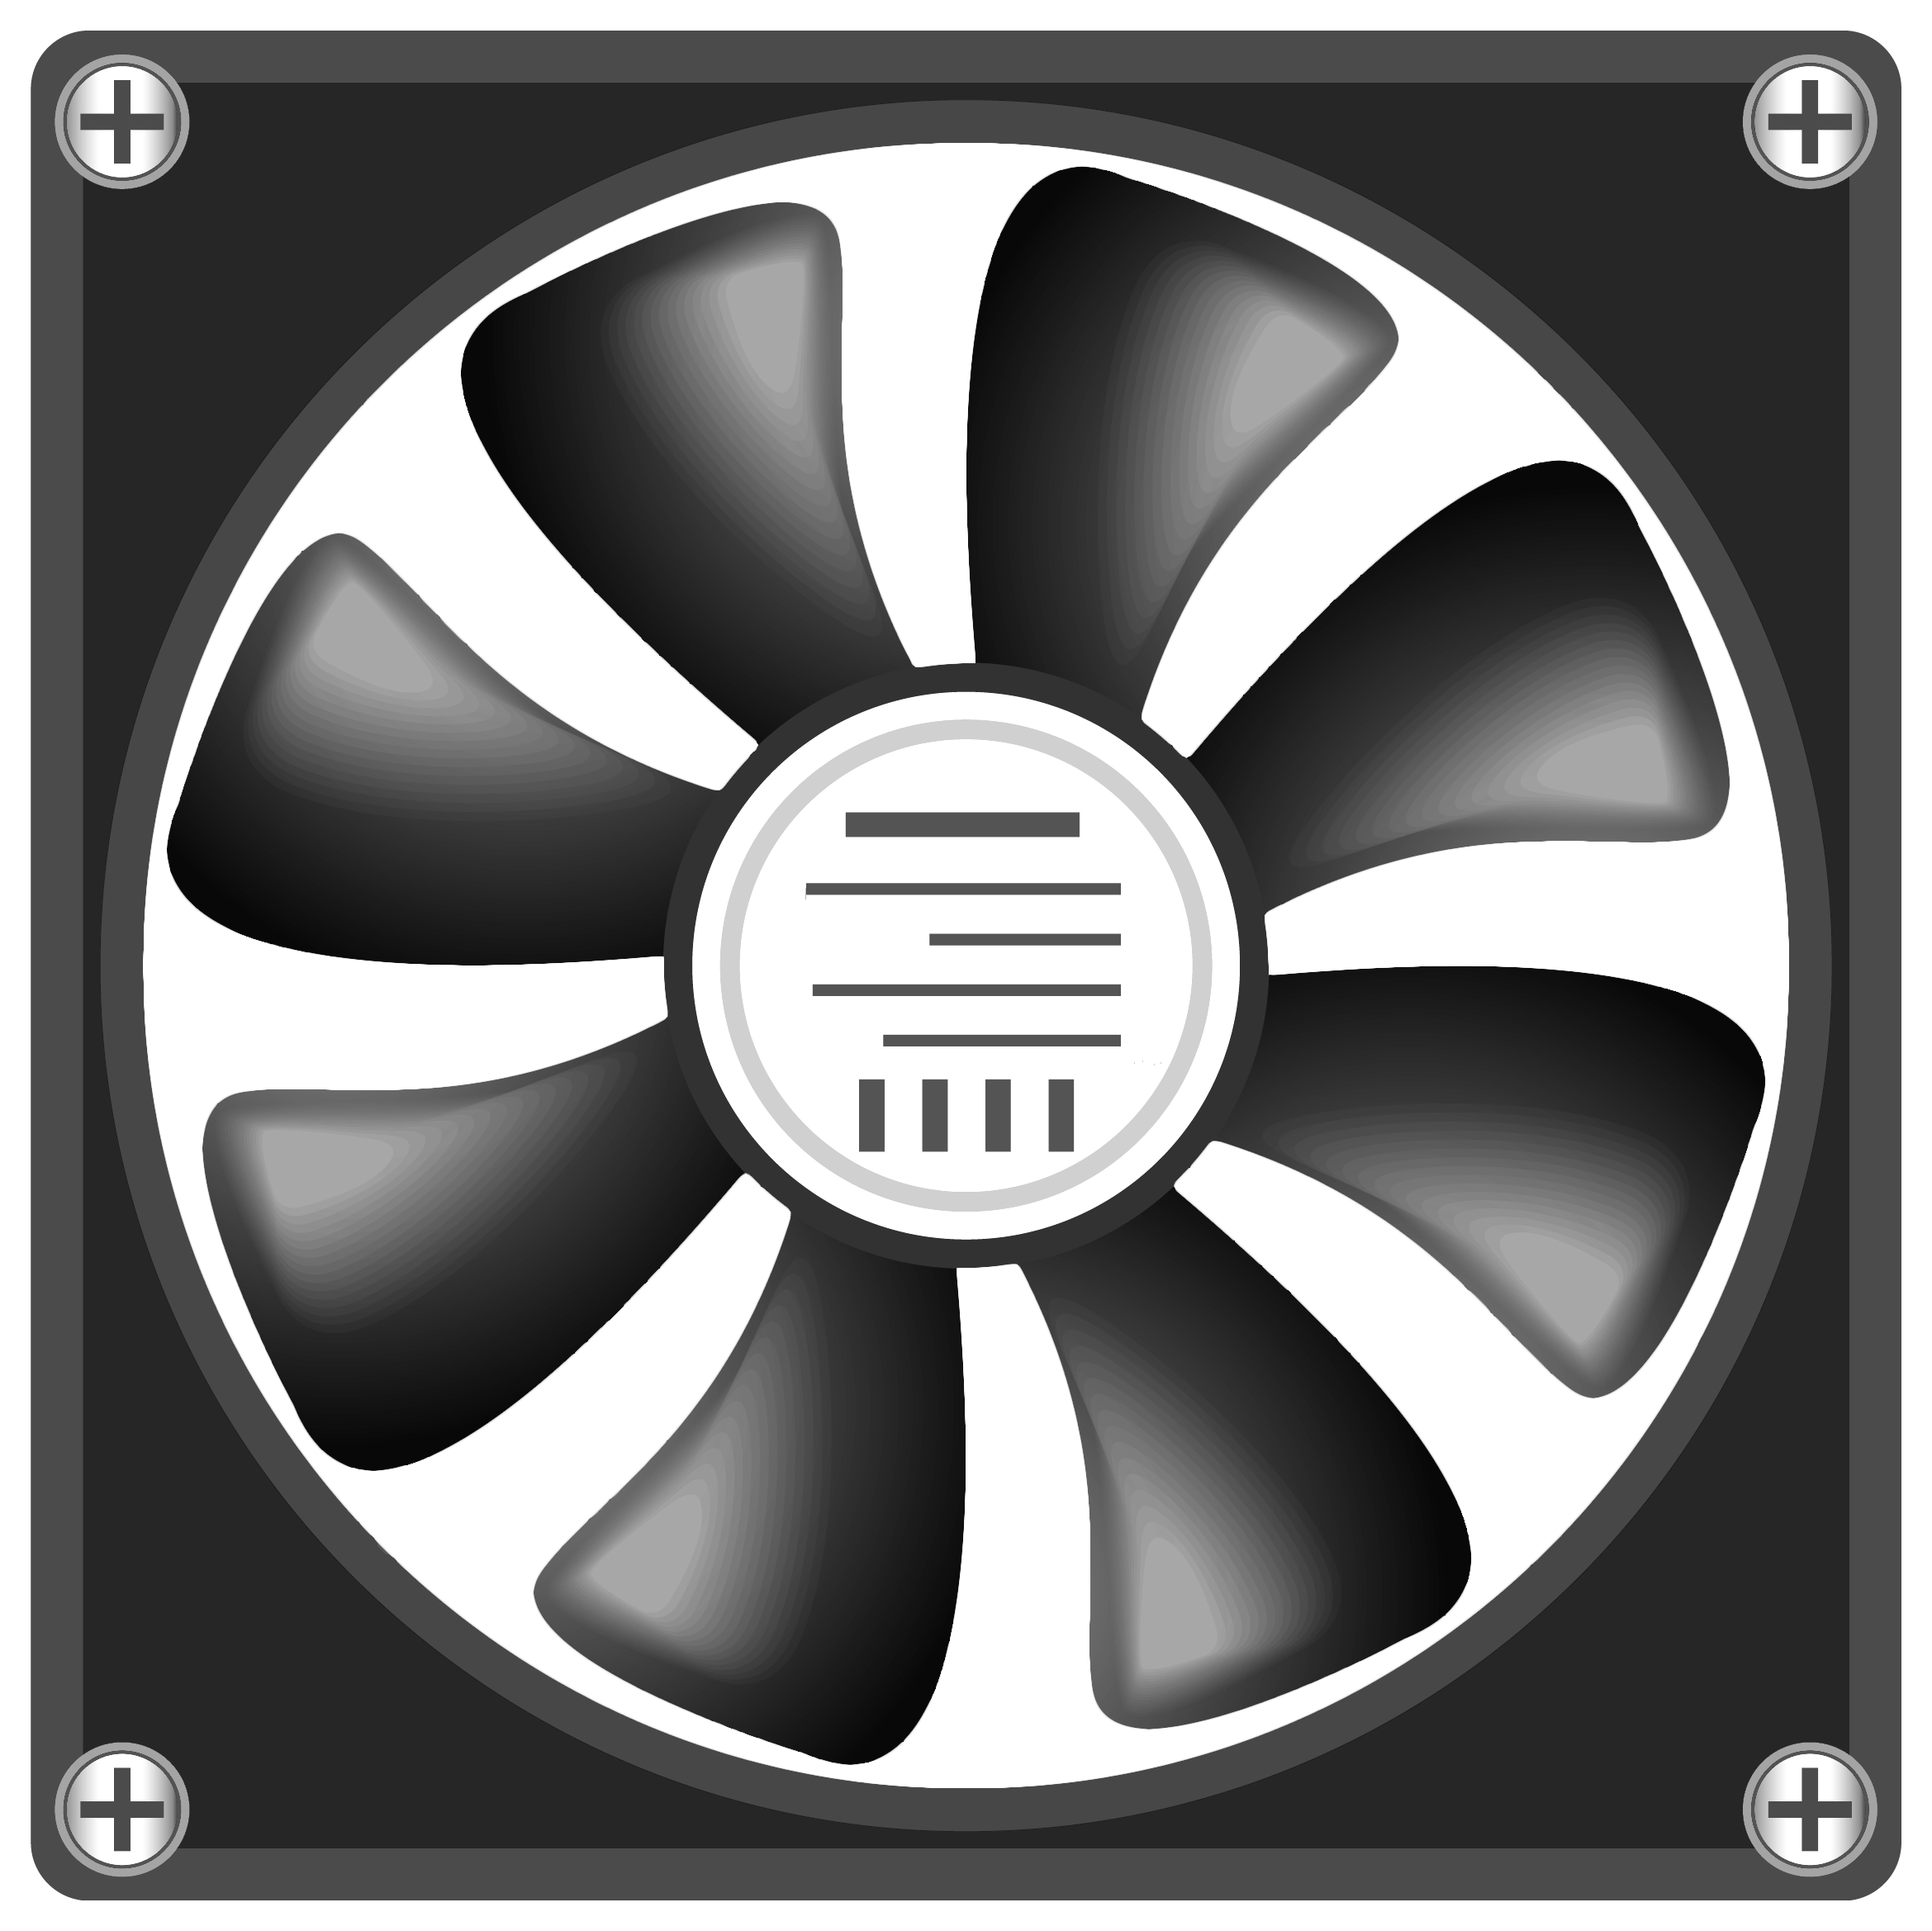 Money fan clipart black and white image free library 12V Computer Fan PNG Clipart - Best WEB Clipart image free library